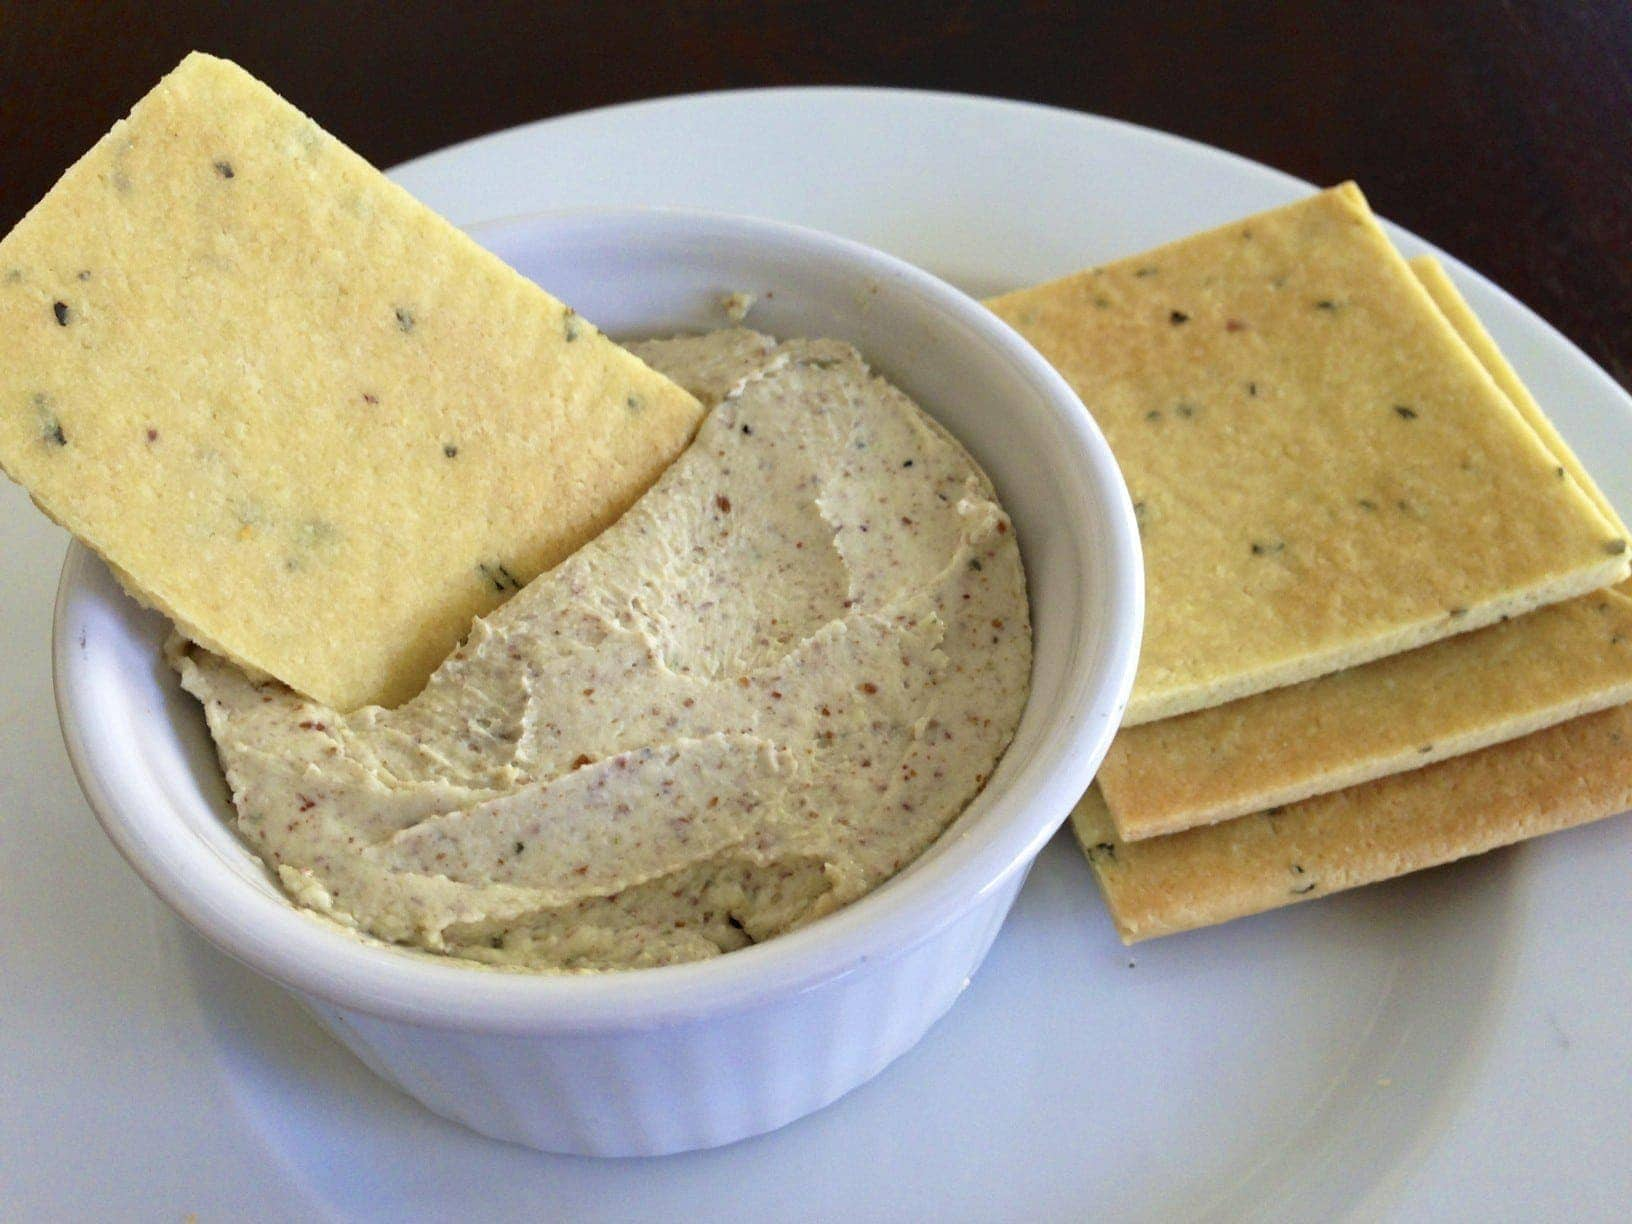 Roasted Garlic Basil Cheese Dip and Homemade Gluten Free Basil Crackers